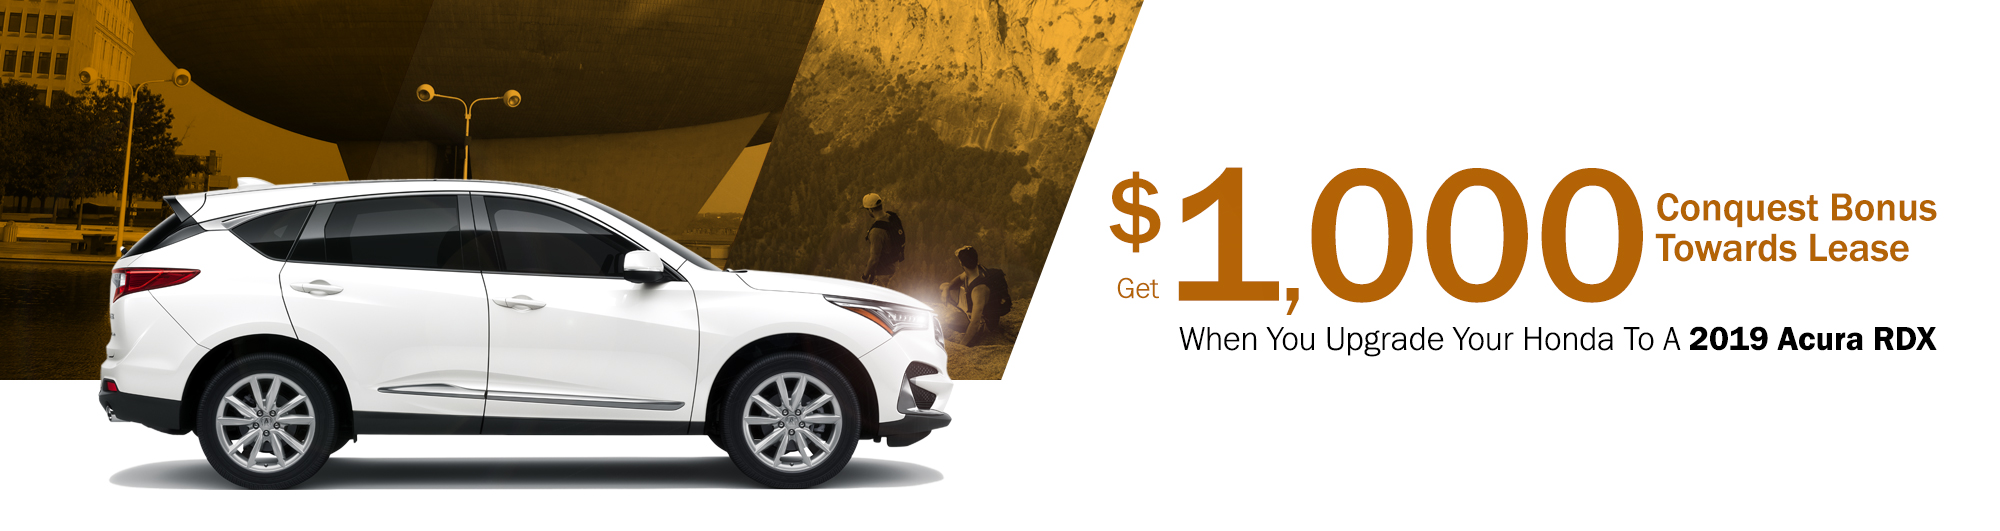 Get $1,000 Conquest Bonus Towards Lease When You Upgrade Your Honda To A 2019 Acura RDX